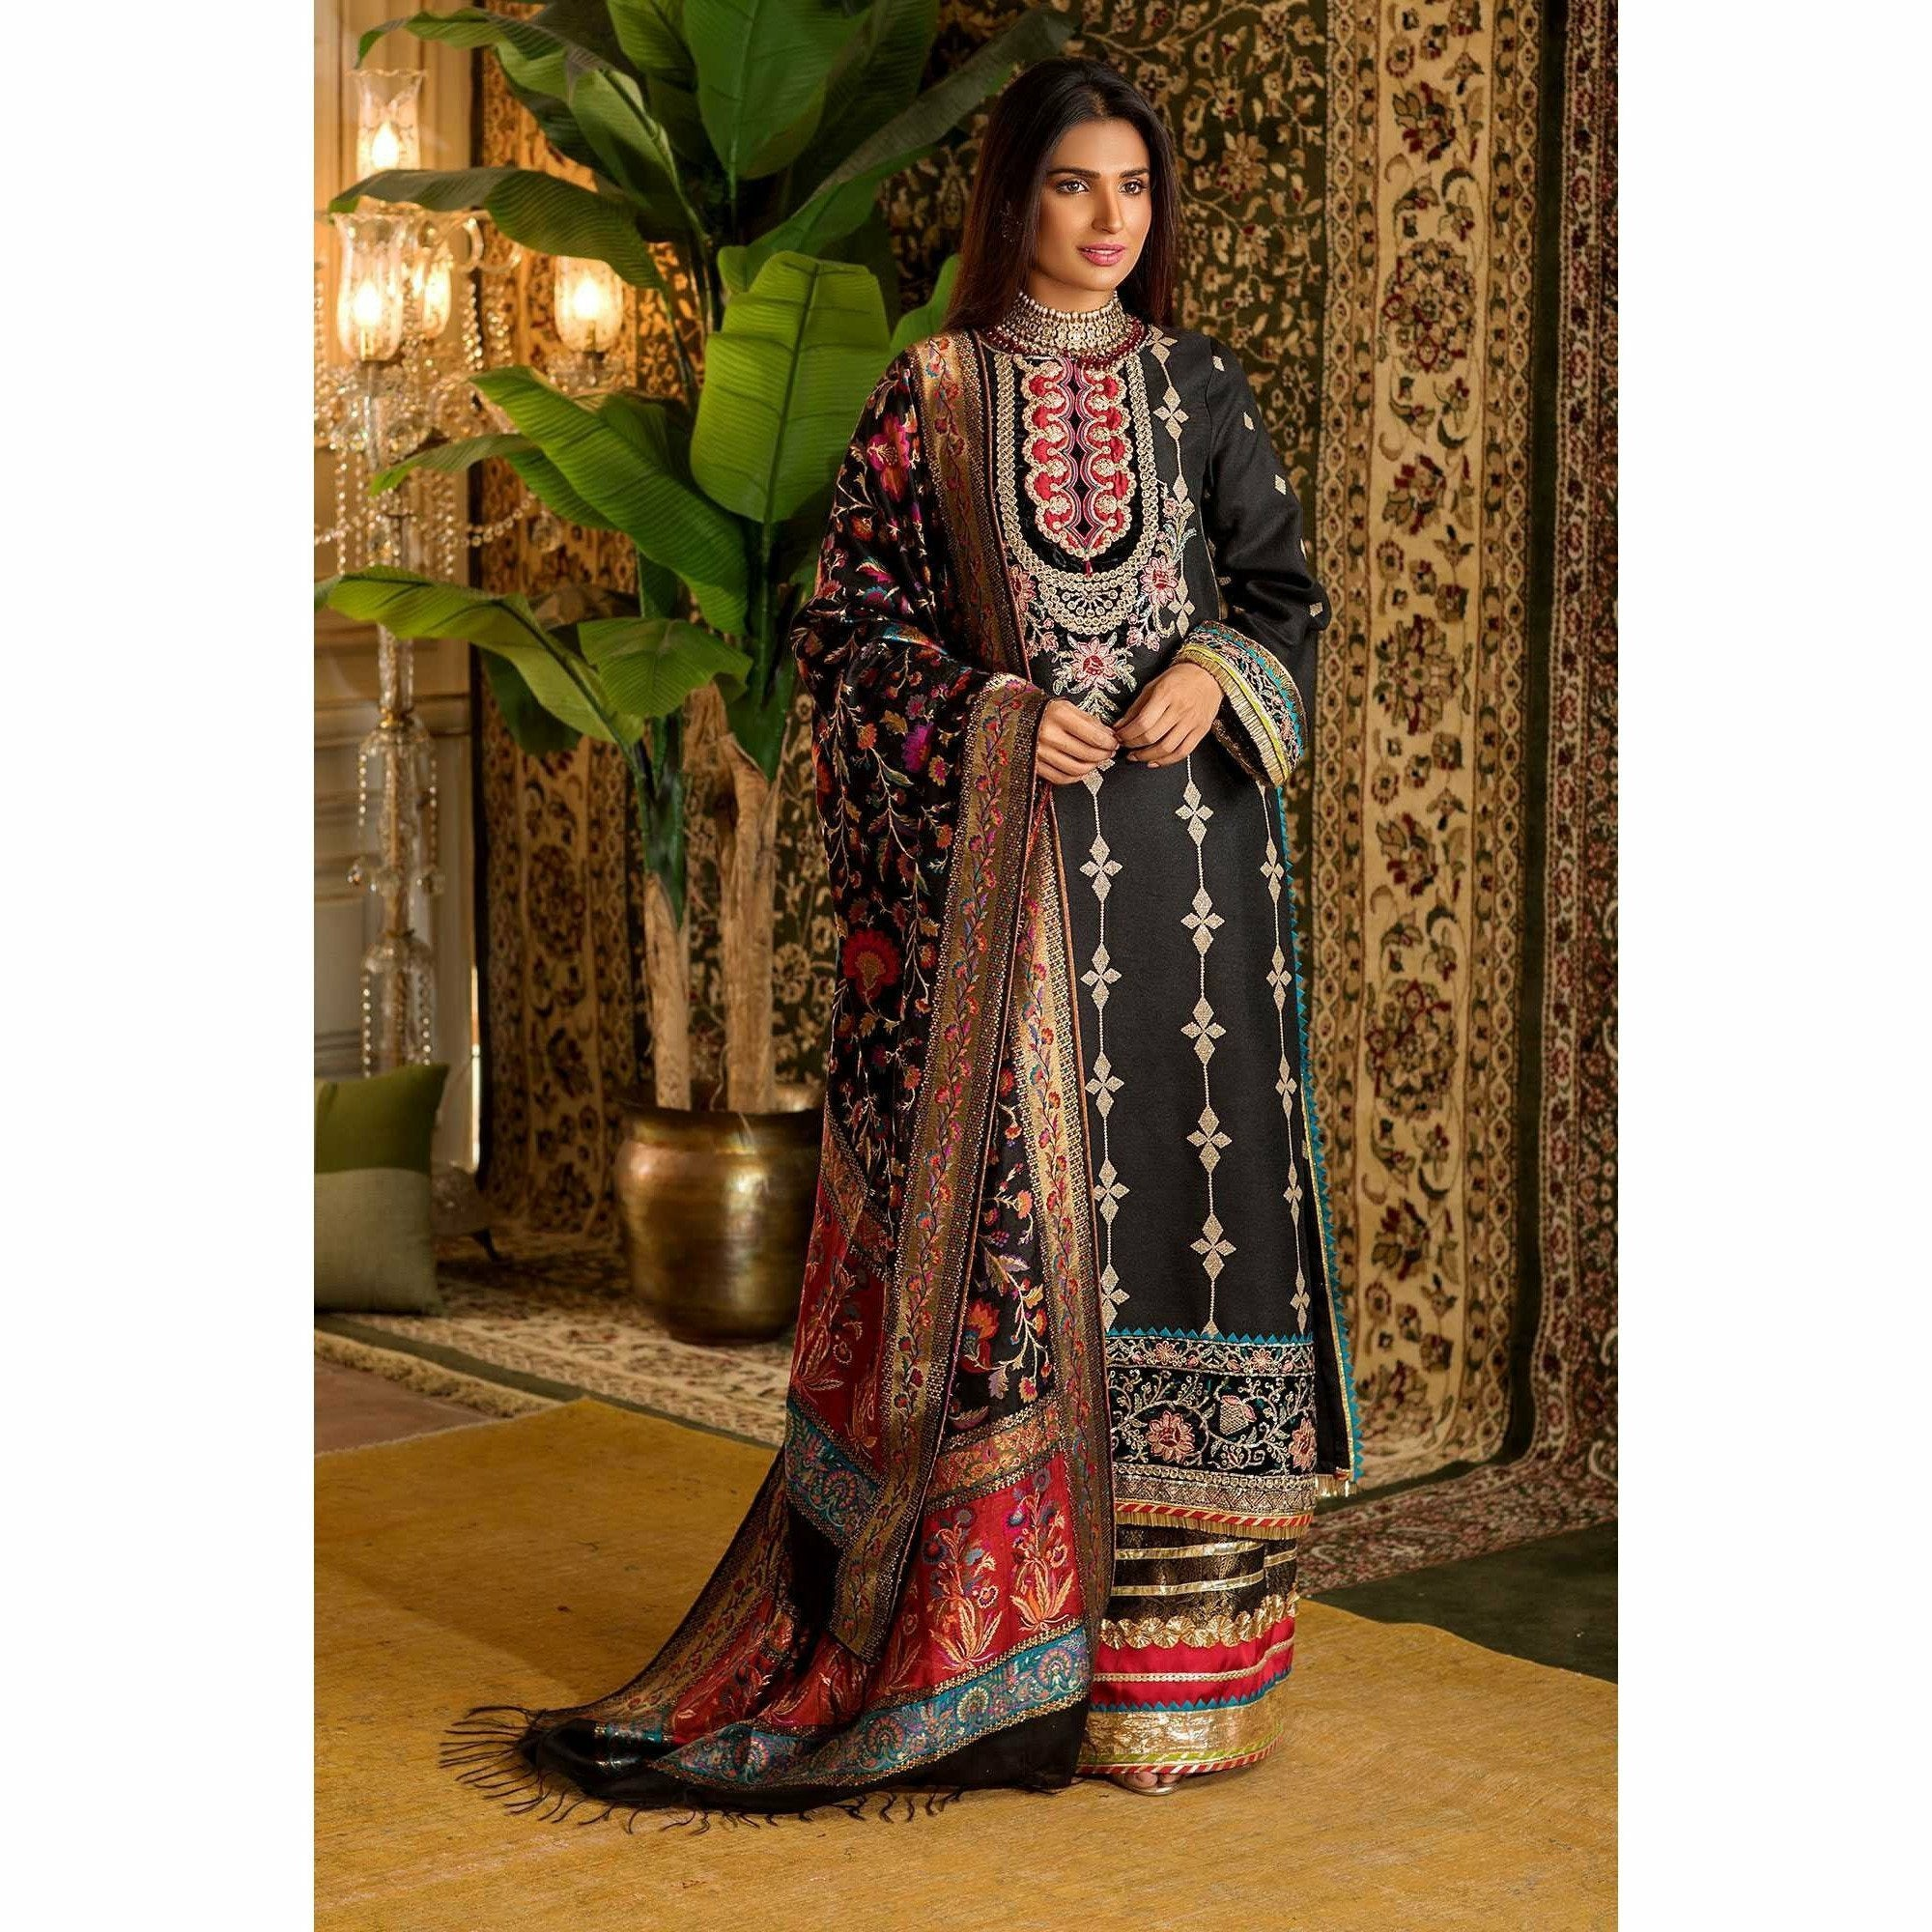 Sadia Asad | EMBROIDERED'19 | NEMBD-D3